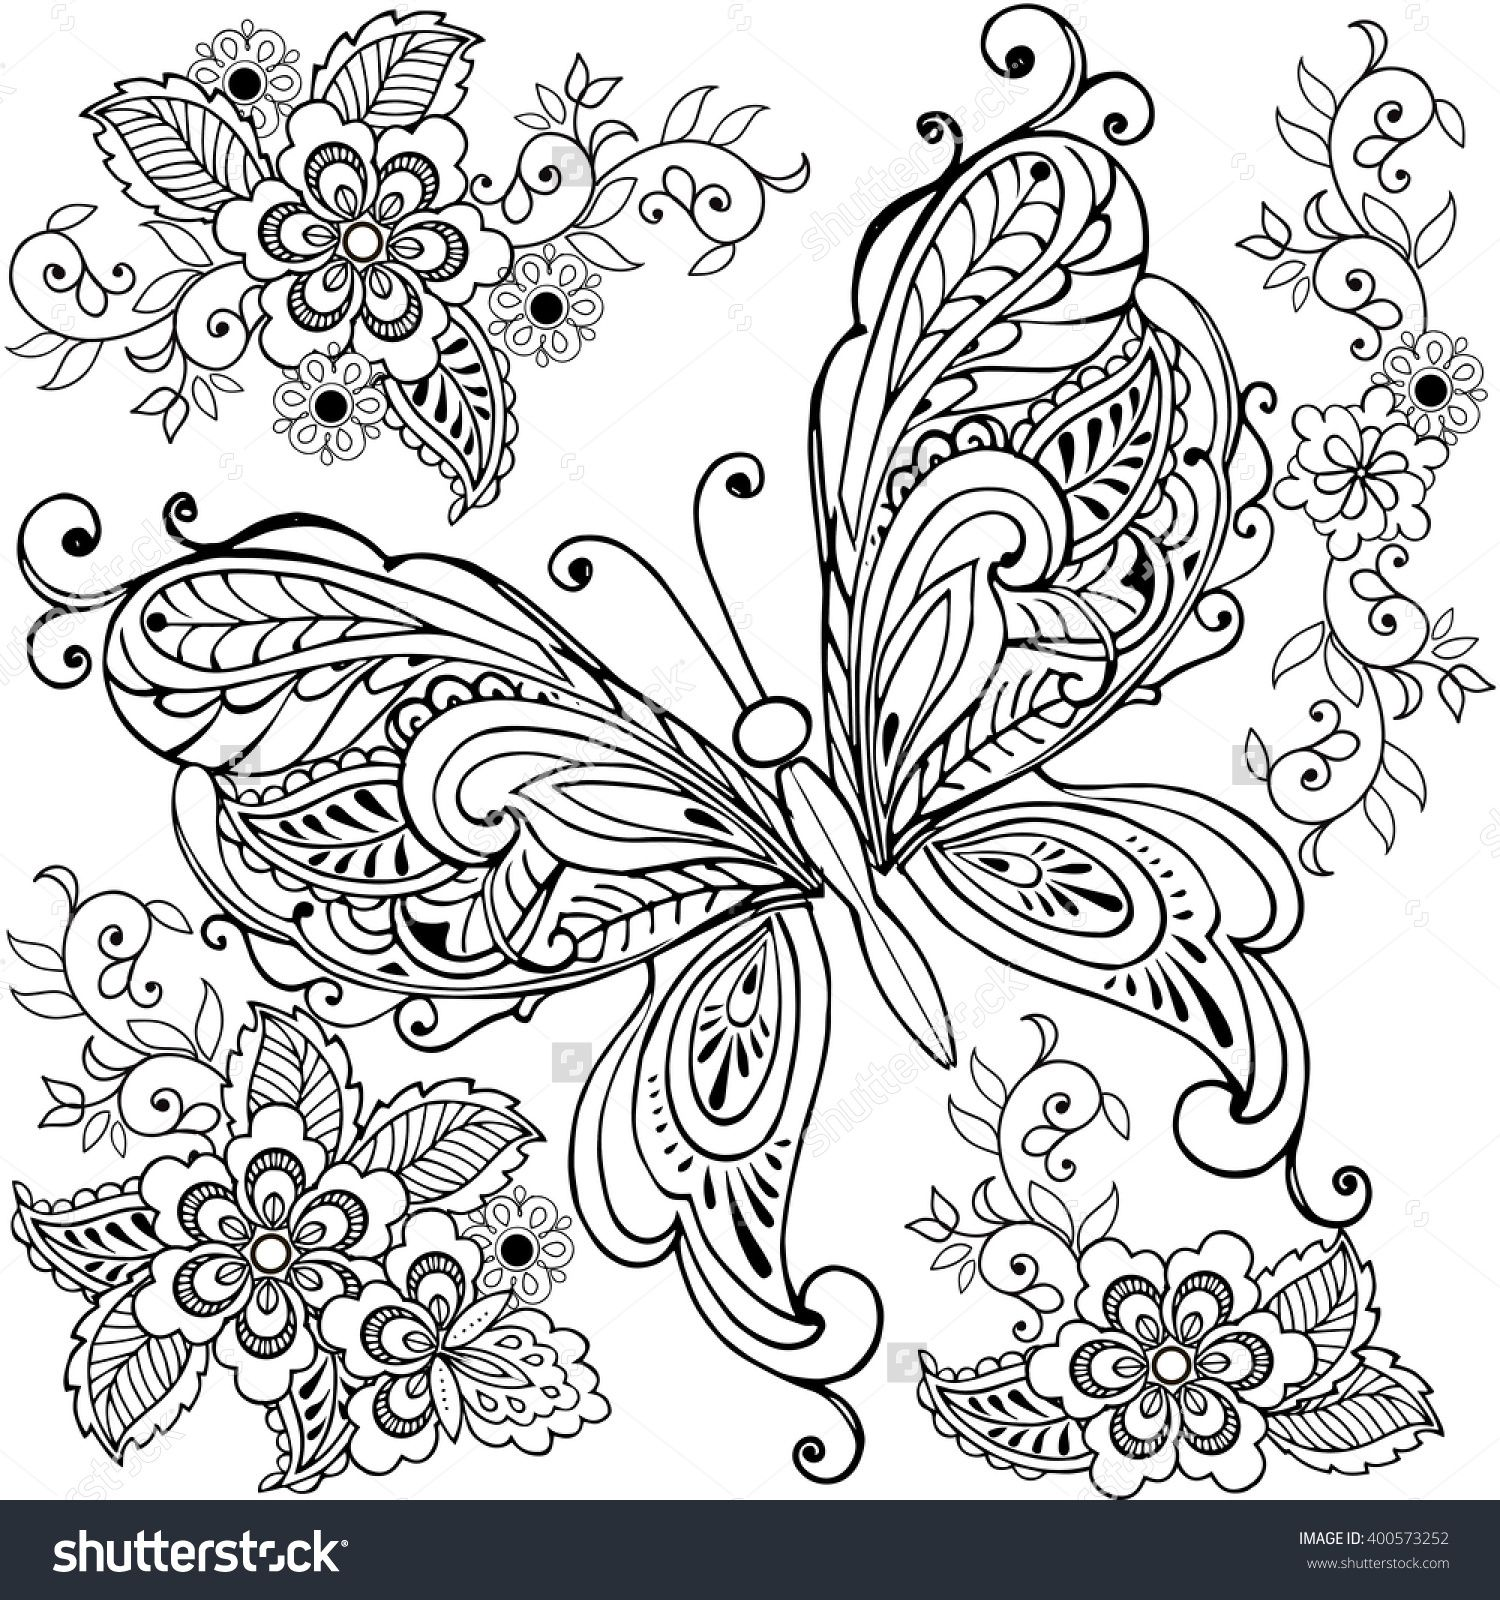 Hand Drawn Decorative Butterfly With Florals For The Anti Stress Coloring Page Mandala Coloring Pages Butterfly Coloring Page Mandala Coloring [ 1600 x 1500 Pixel ]